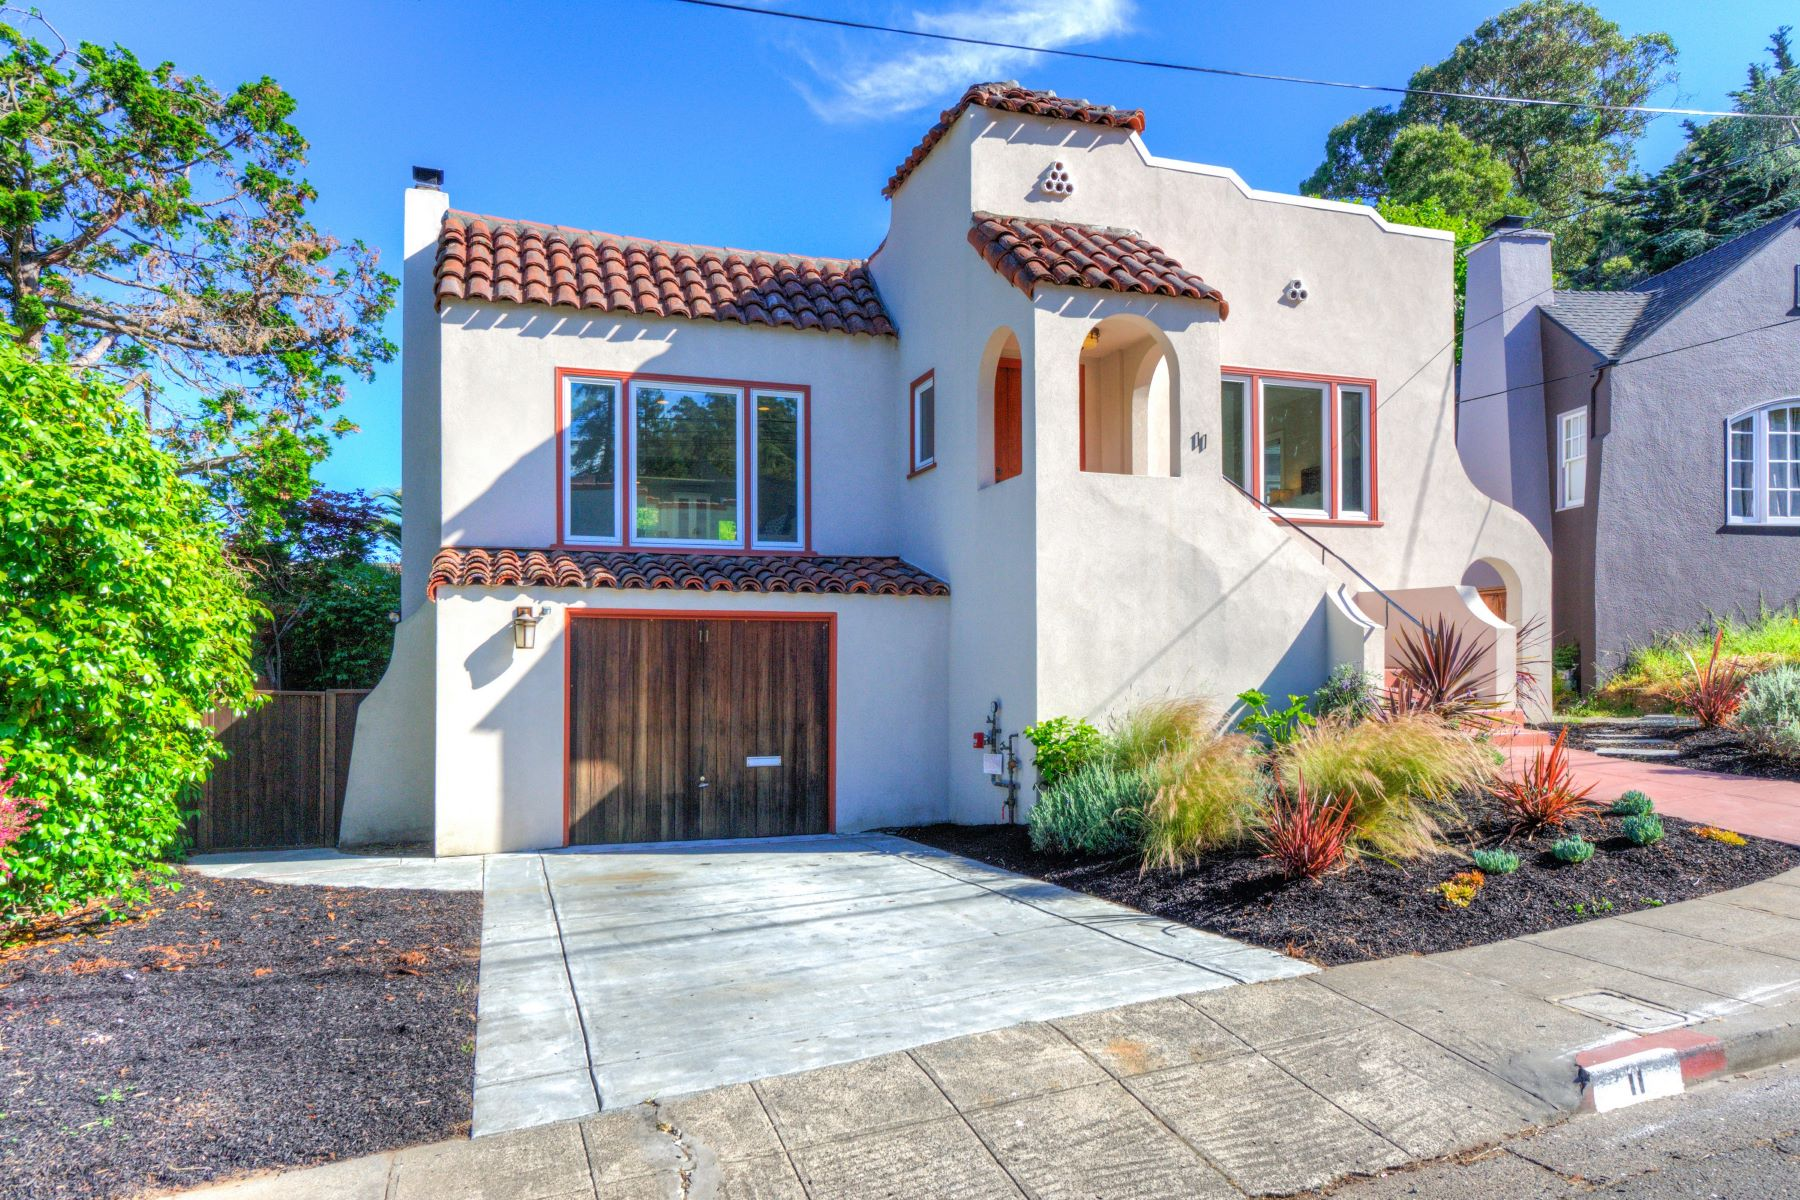 Single Family Home for Sale at Vintage Charm, Modern Amenities 11 Wilson Court San Rafael, California 94901 United States